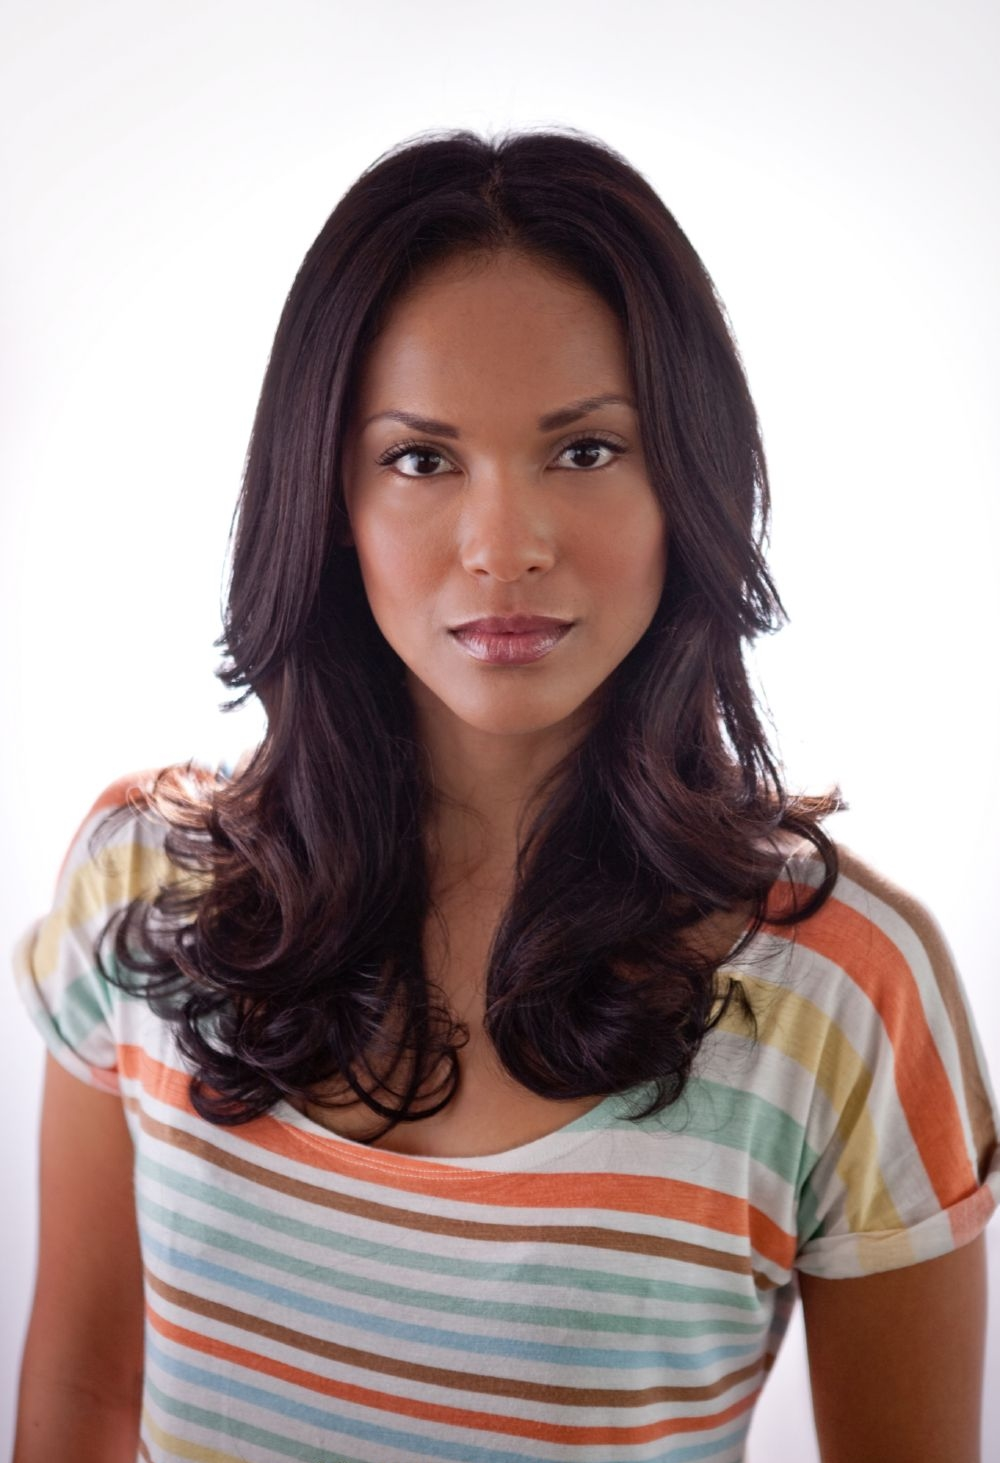 Lesley-ann Brandt - Beautiful Photos